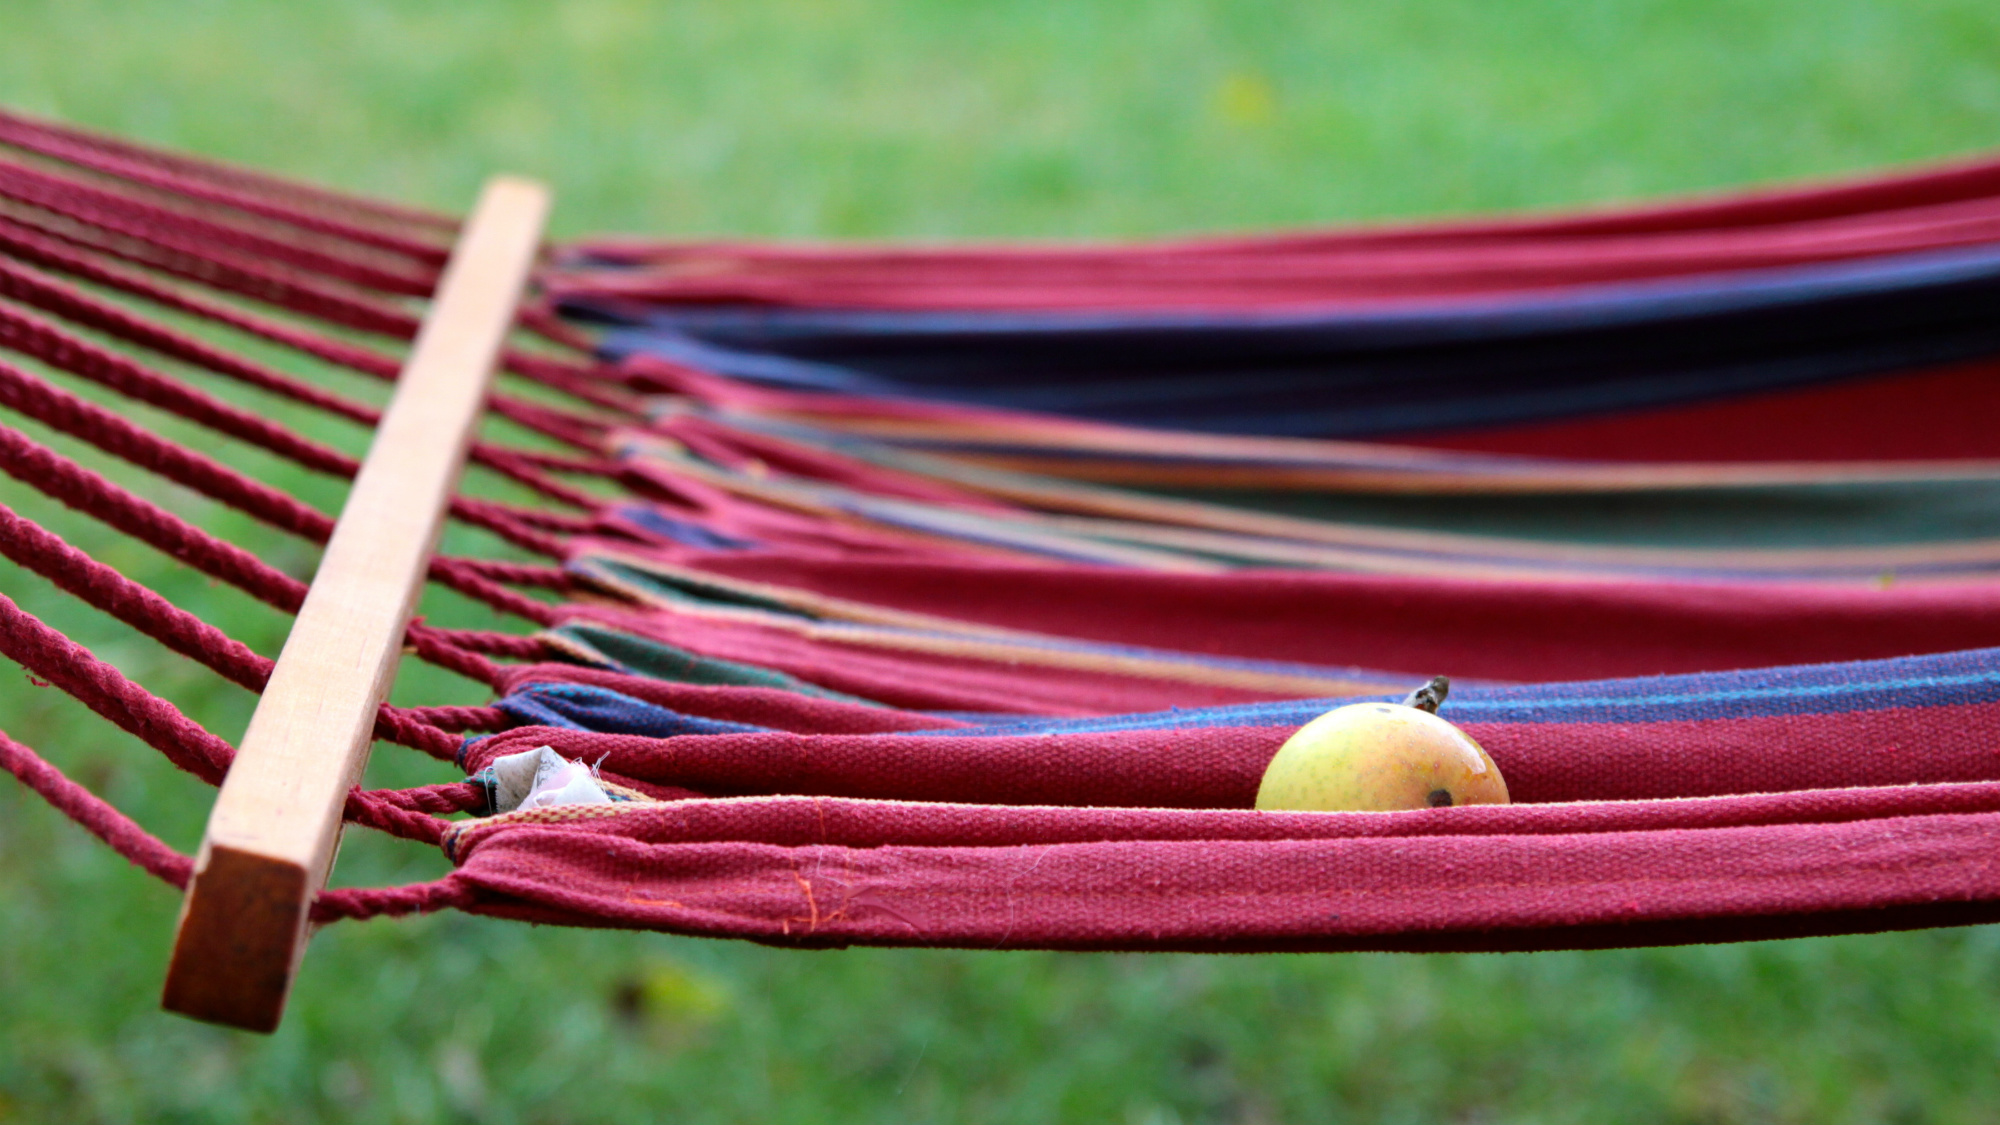 Hammock, study on quality of life